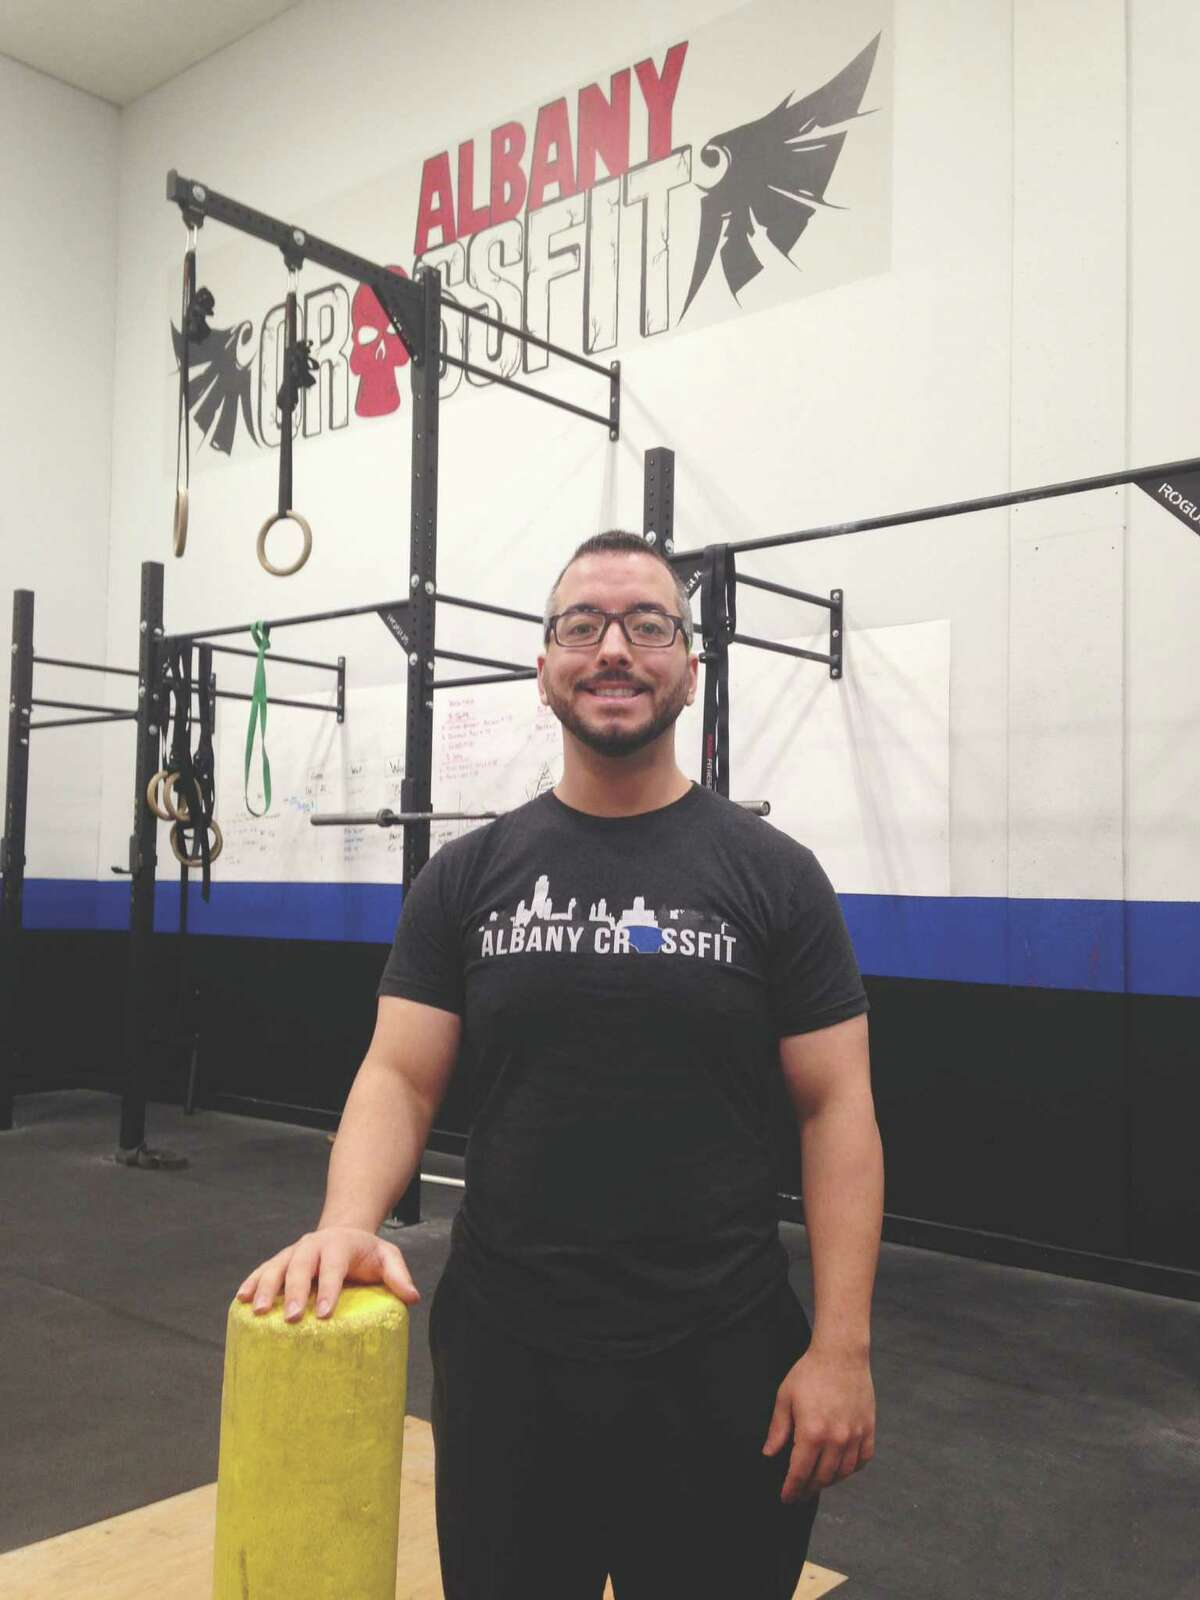 James McDermott, Head Coach at Albany Crossfit in Colonie. (Carin Lane / Times Union)